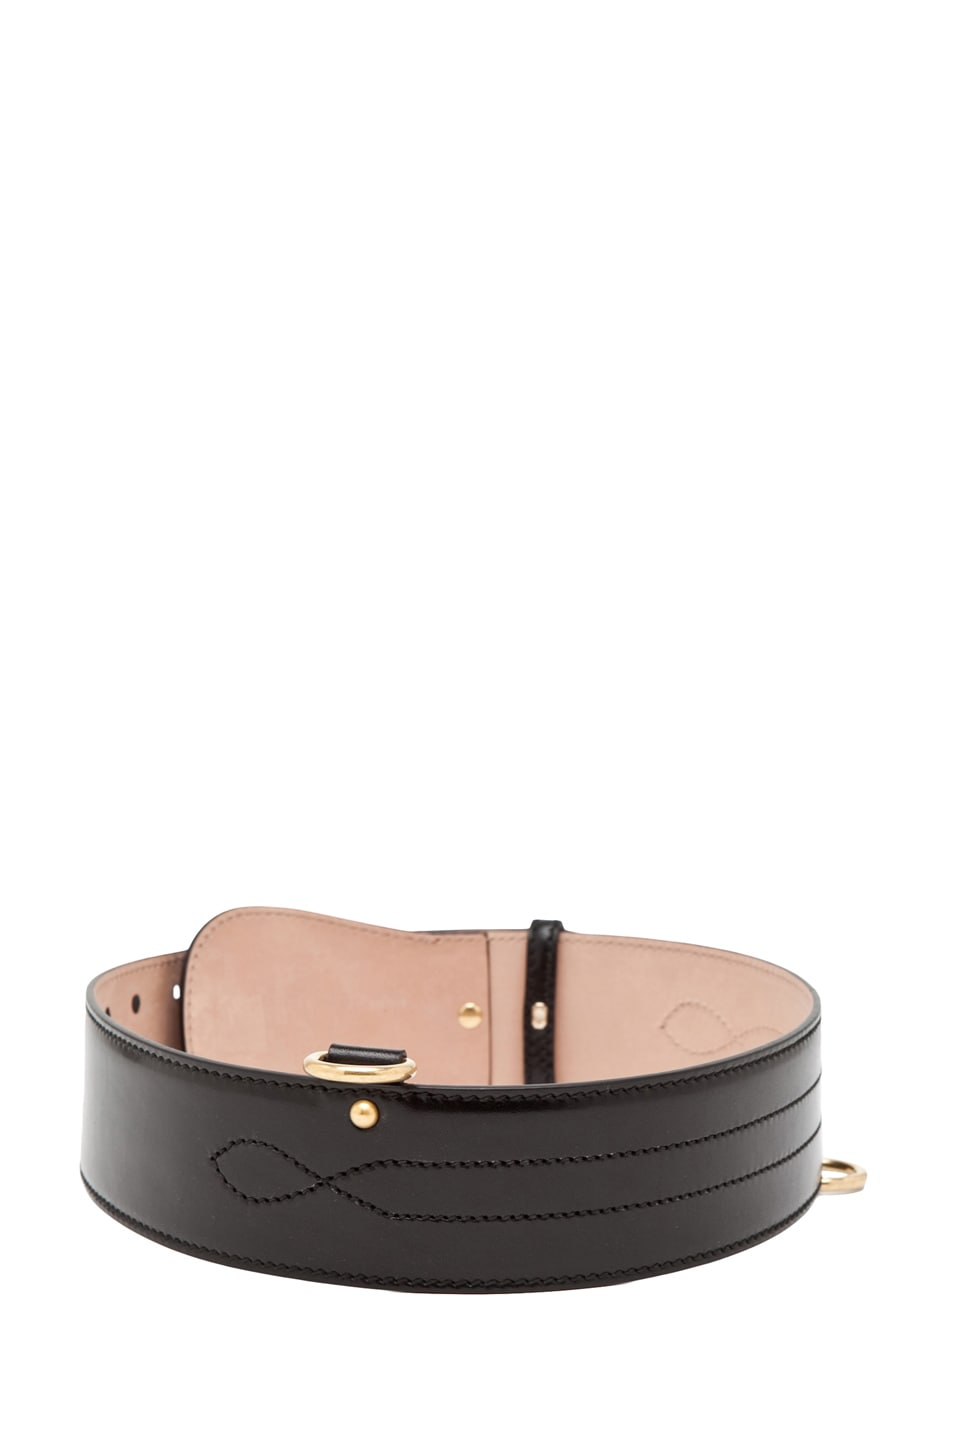 Image 4 of Alexander McQueen Waist Belt in Black